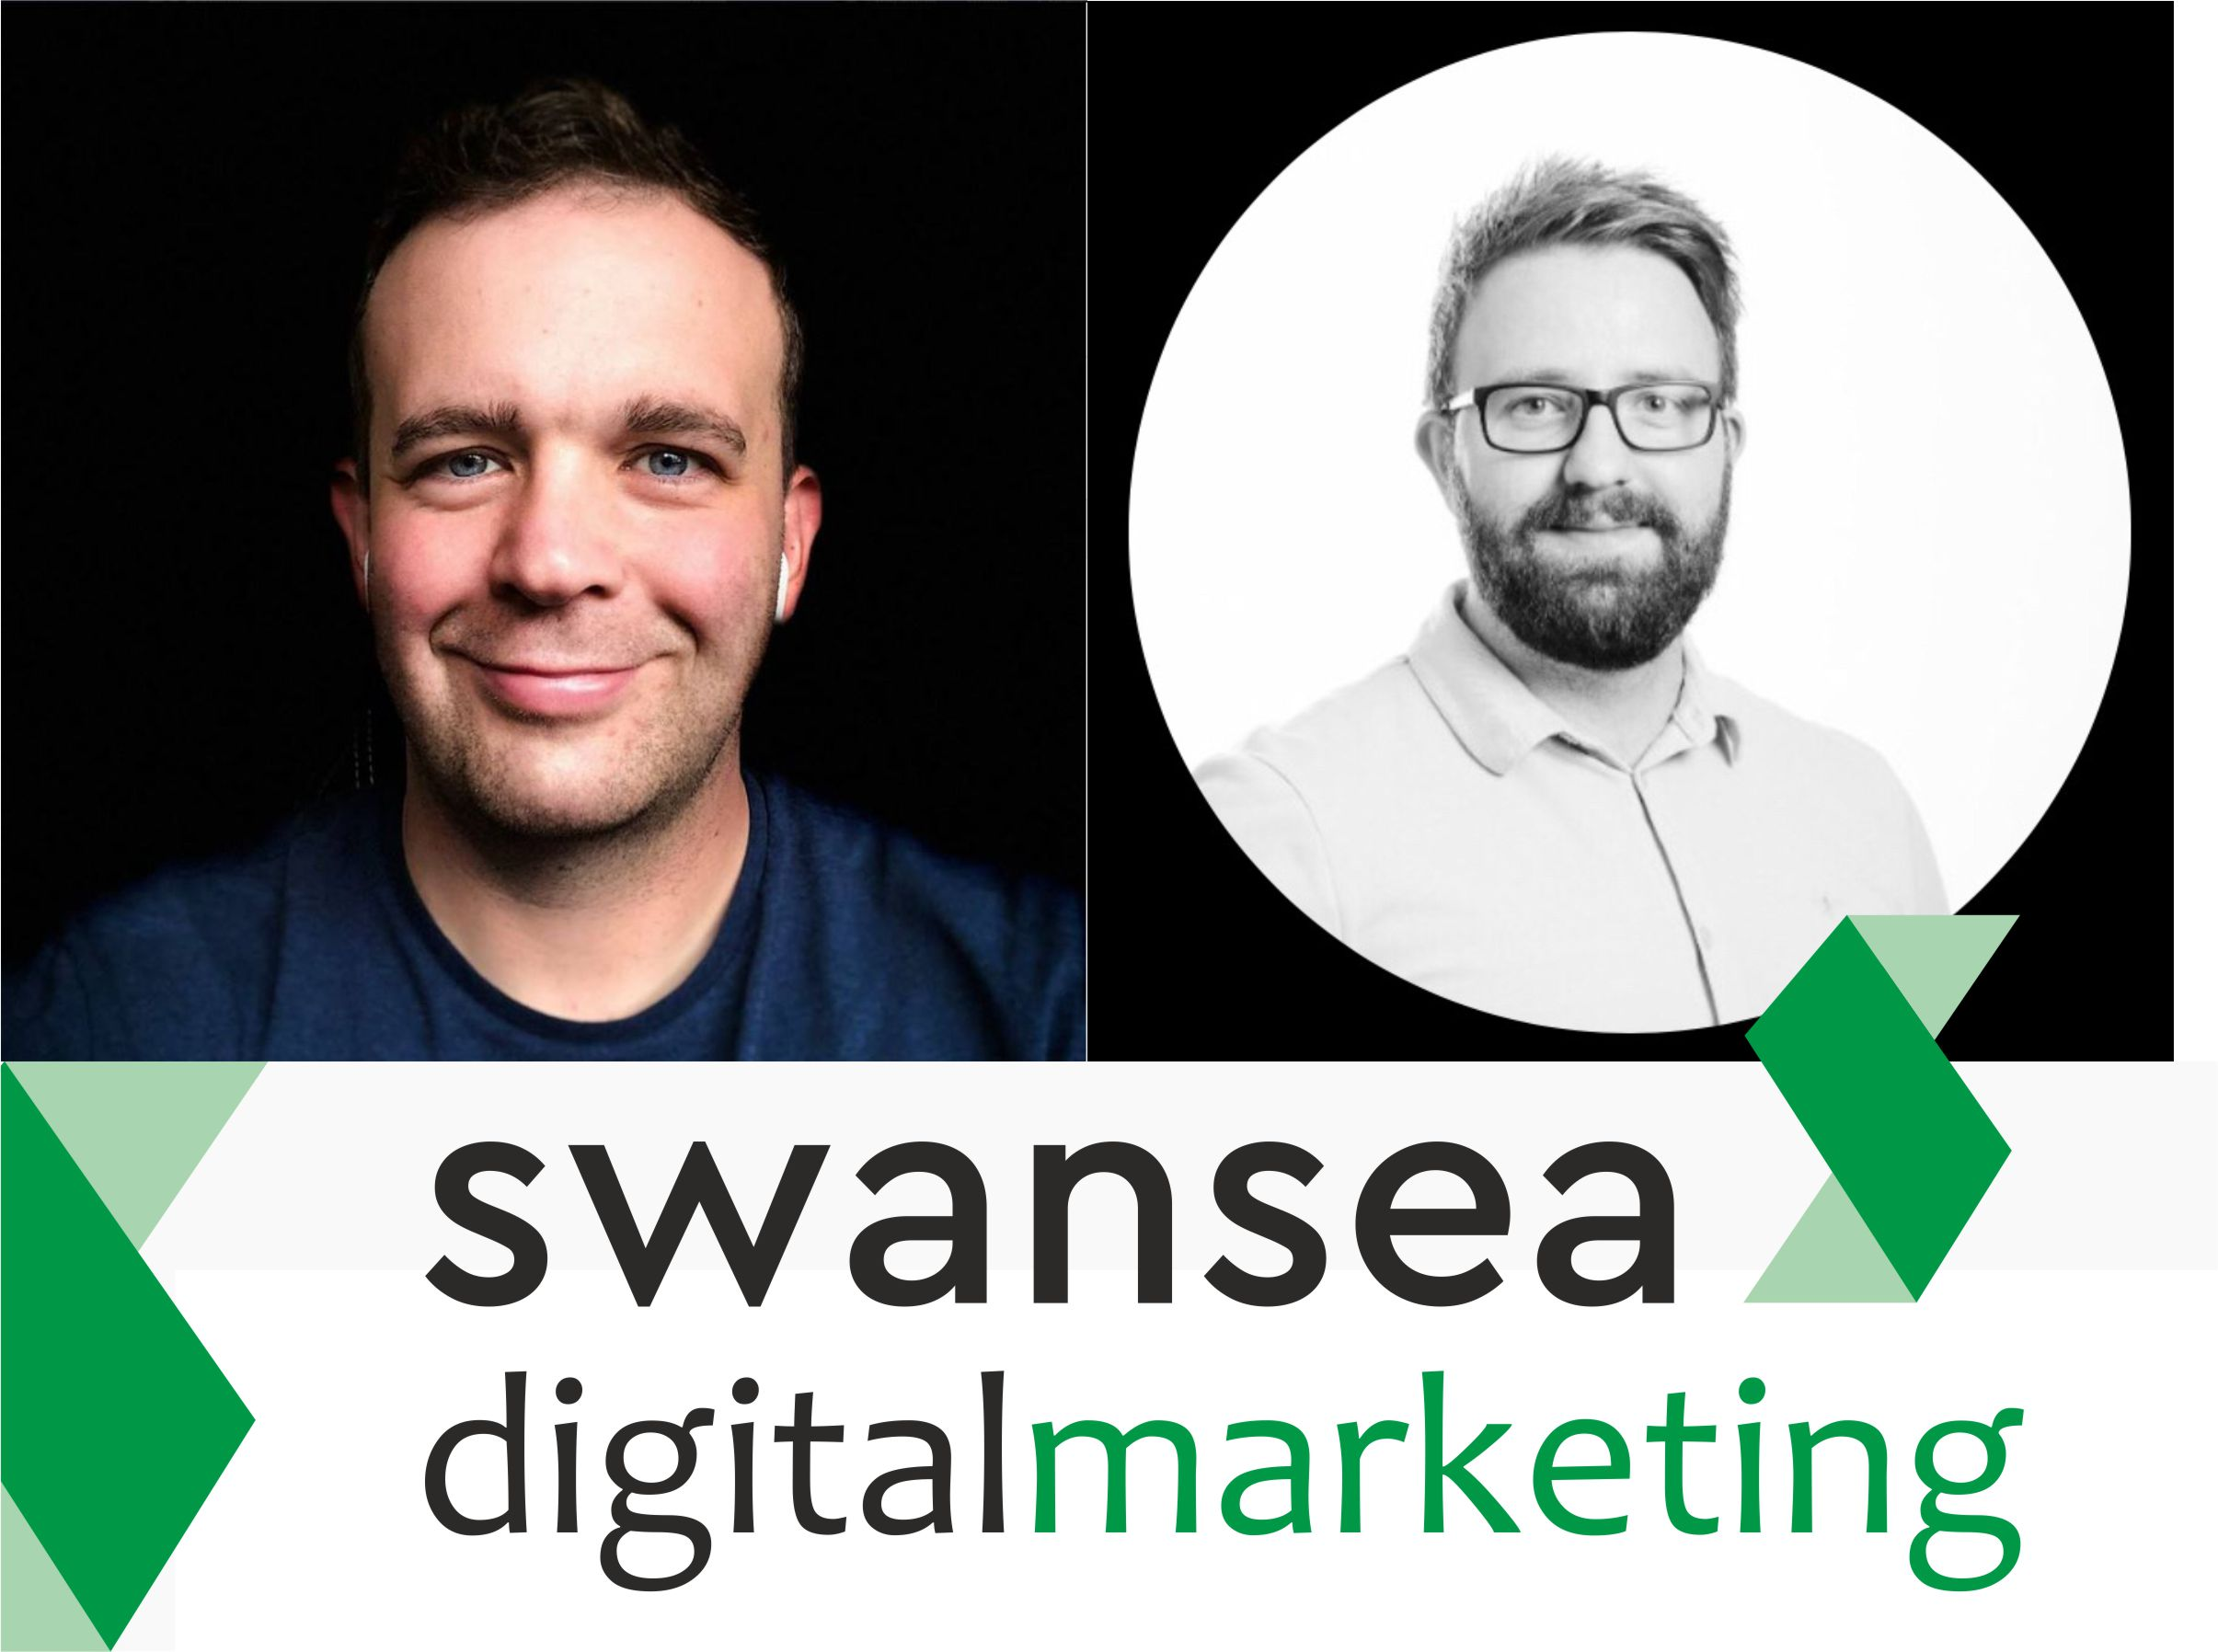 Swansea Digital Marketing & SEO Meetup #2 Speakers